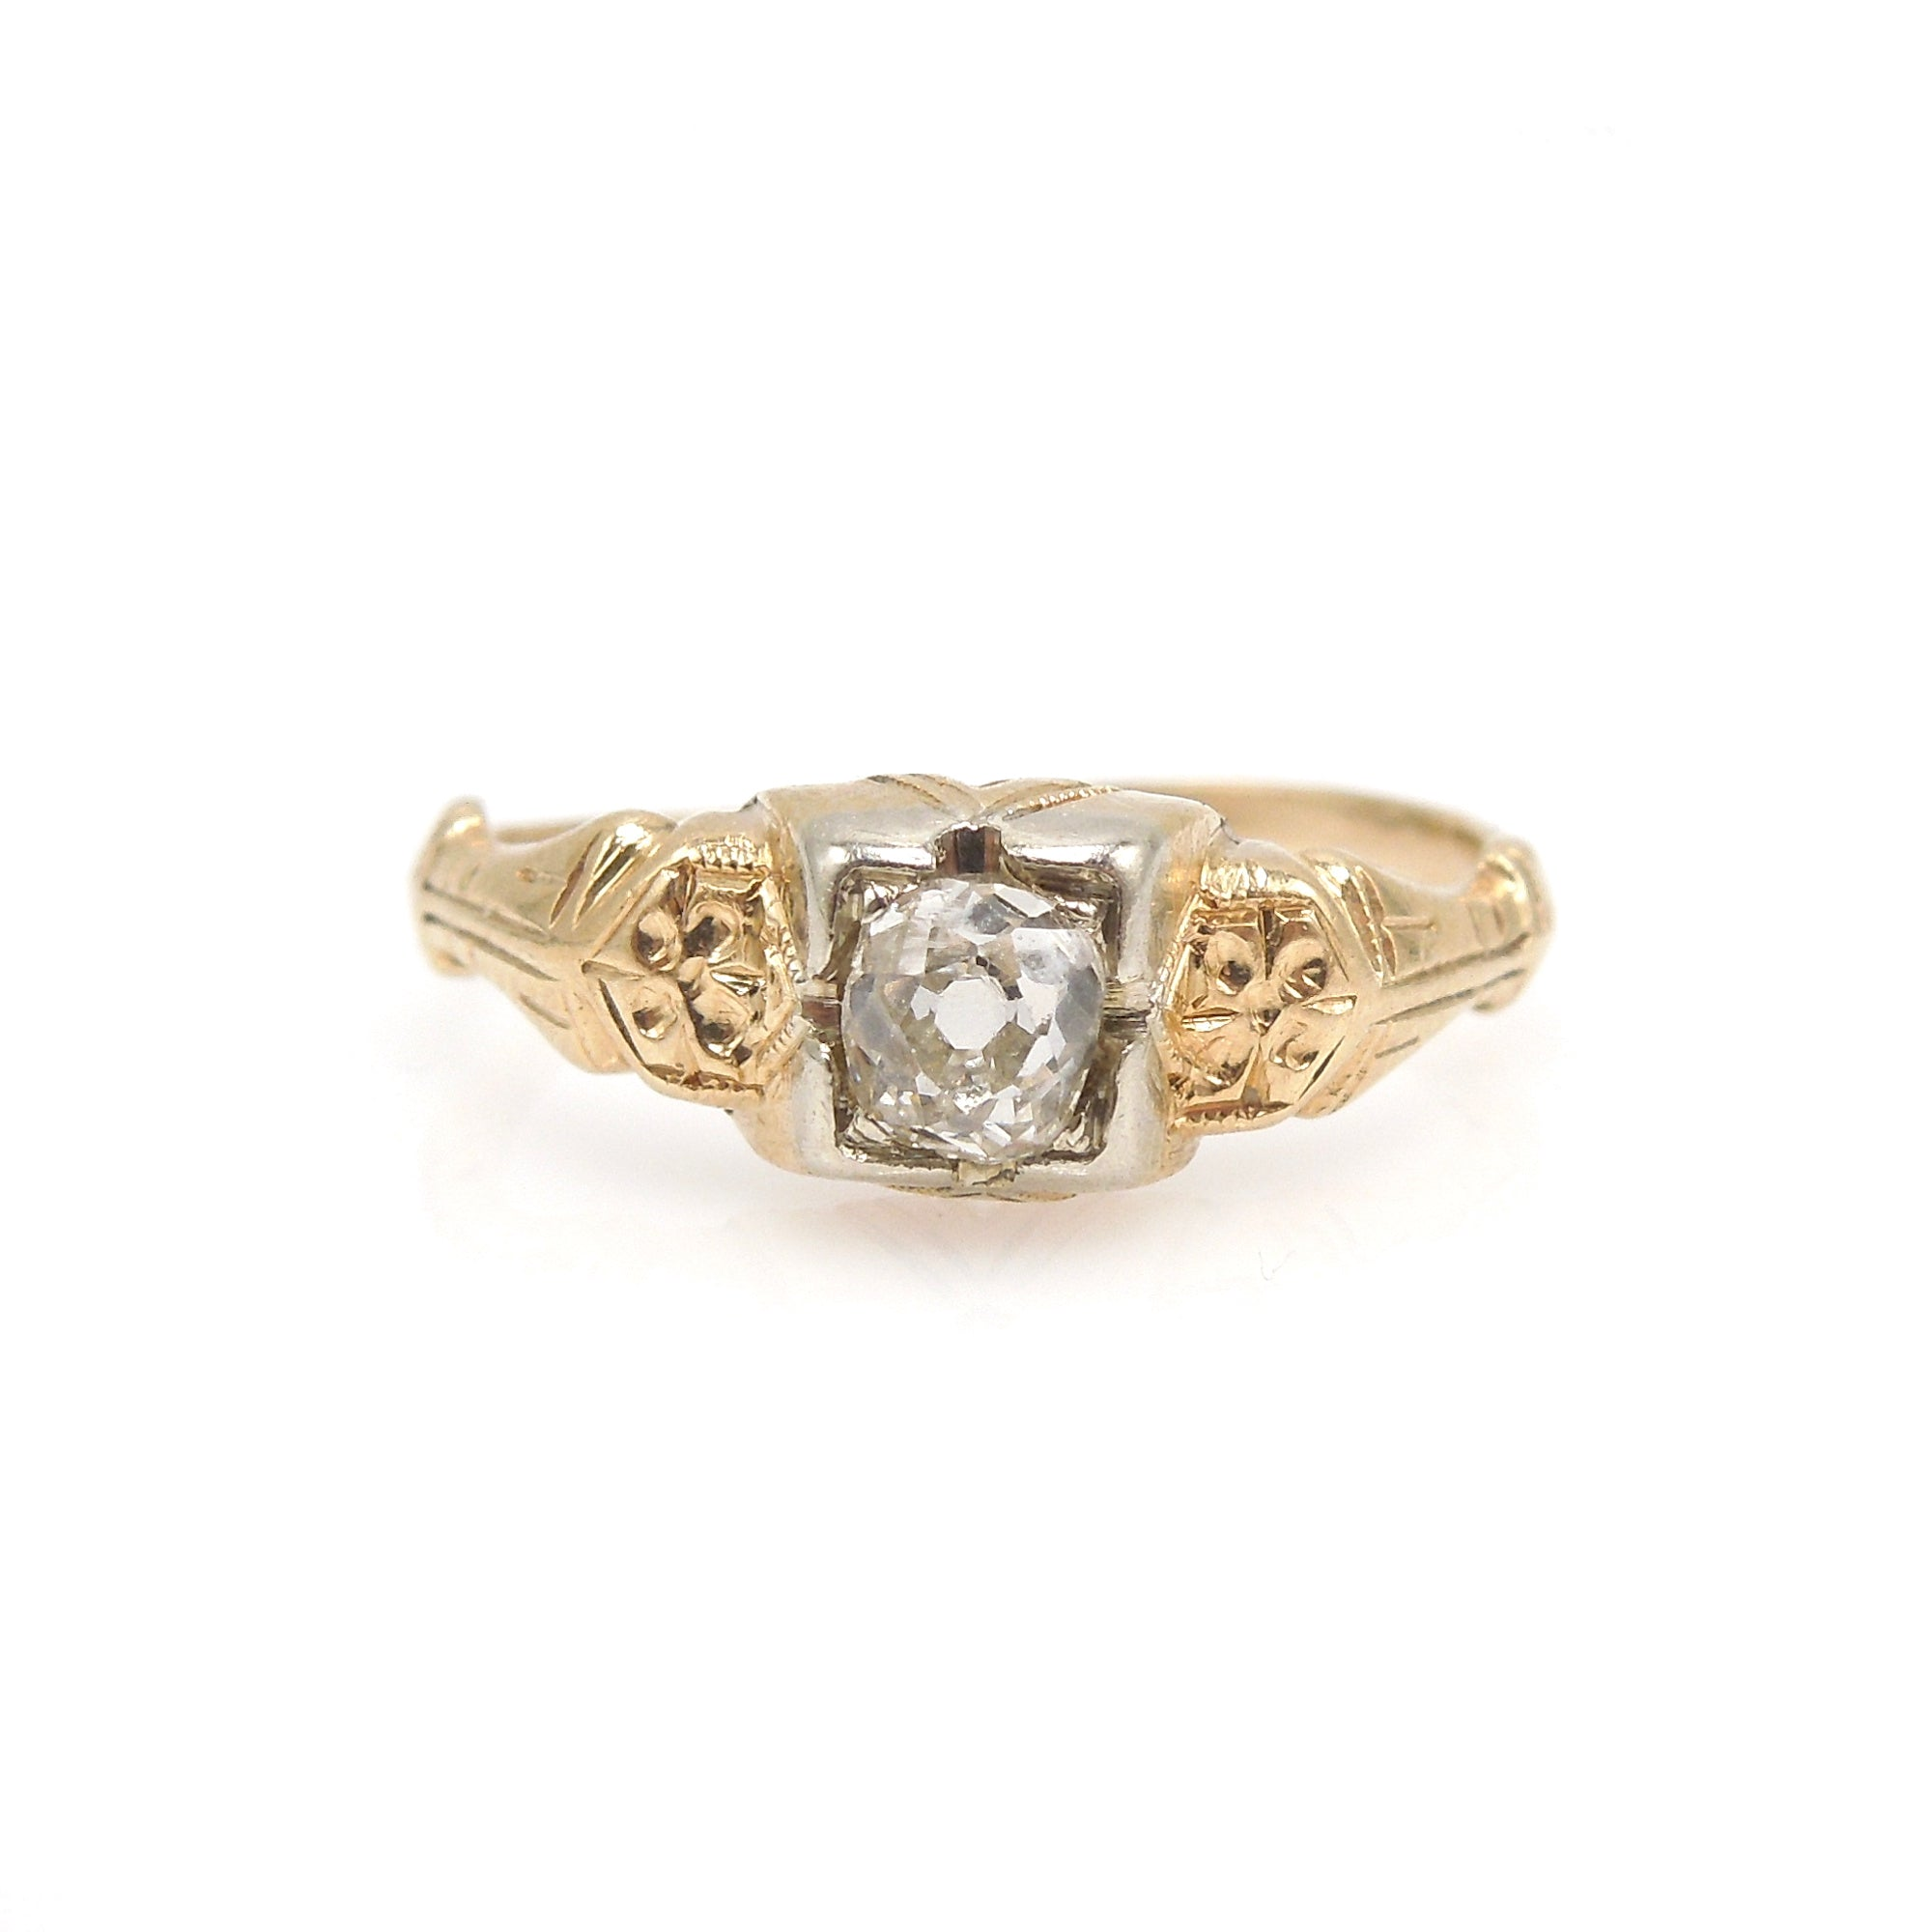 Quarter Carat Old Mine Cut Diamond Engagement Ring in Bicolor Gold